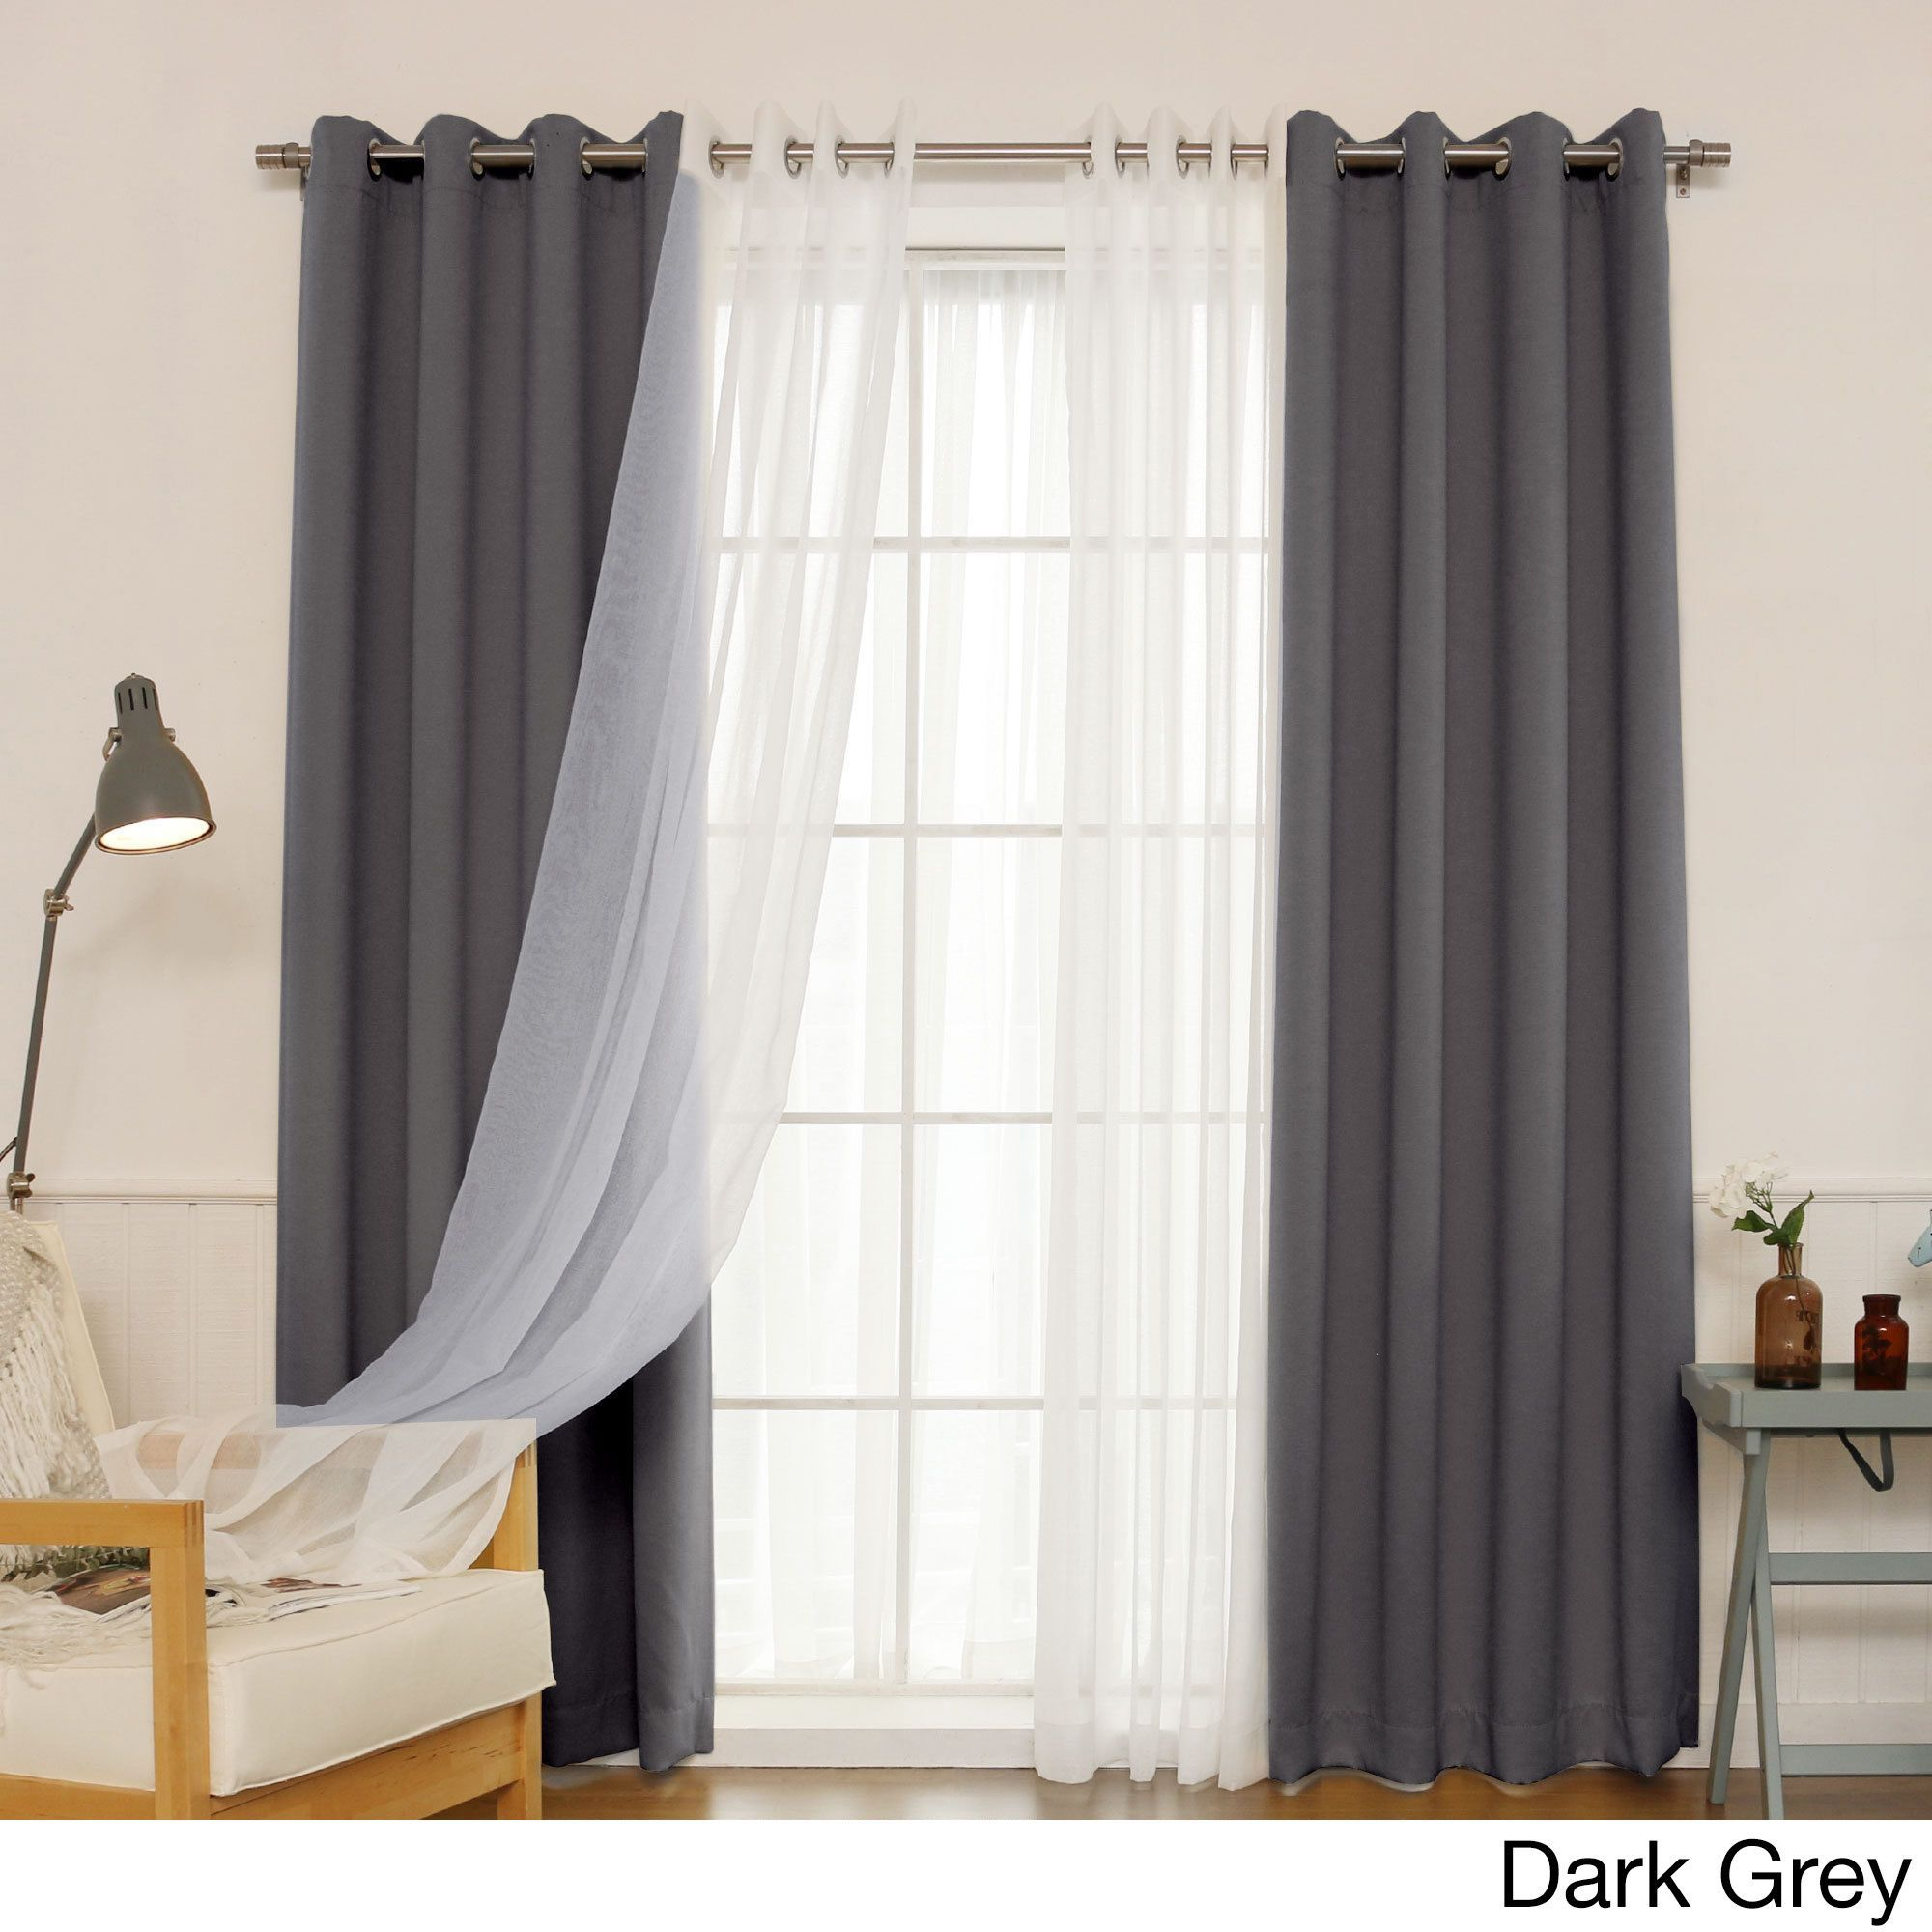 Dark gray curtains - Aurora Home Mix Match Curtains Blackout And Muji Sheer 84 Inch Silver Grommet 4 Piece Curtain Panel Pair Vapor Grey Size 52 X 84 Polyester Solid